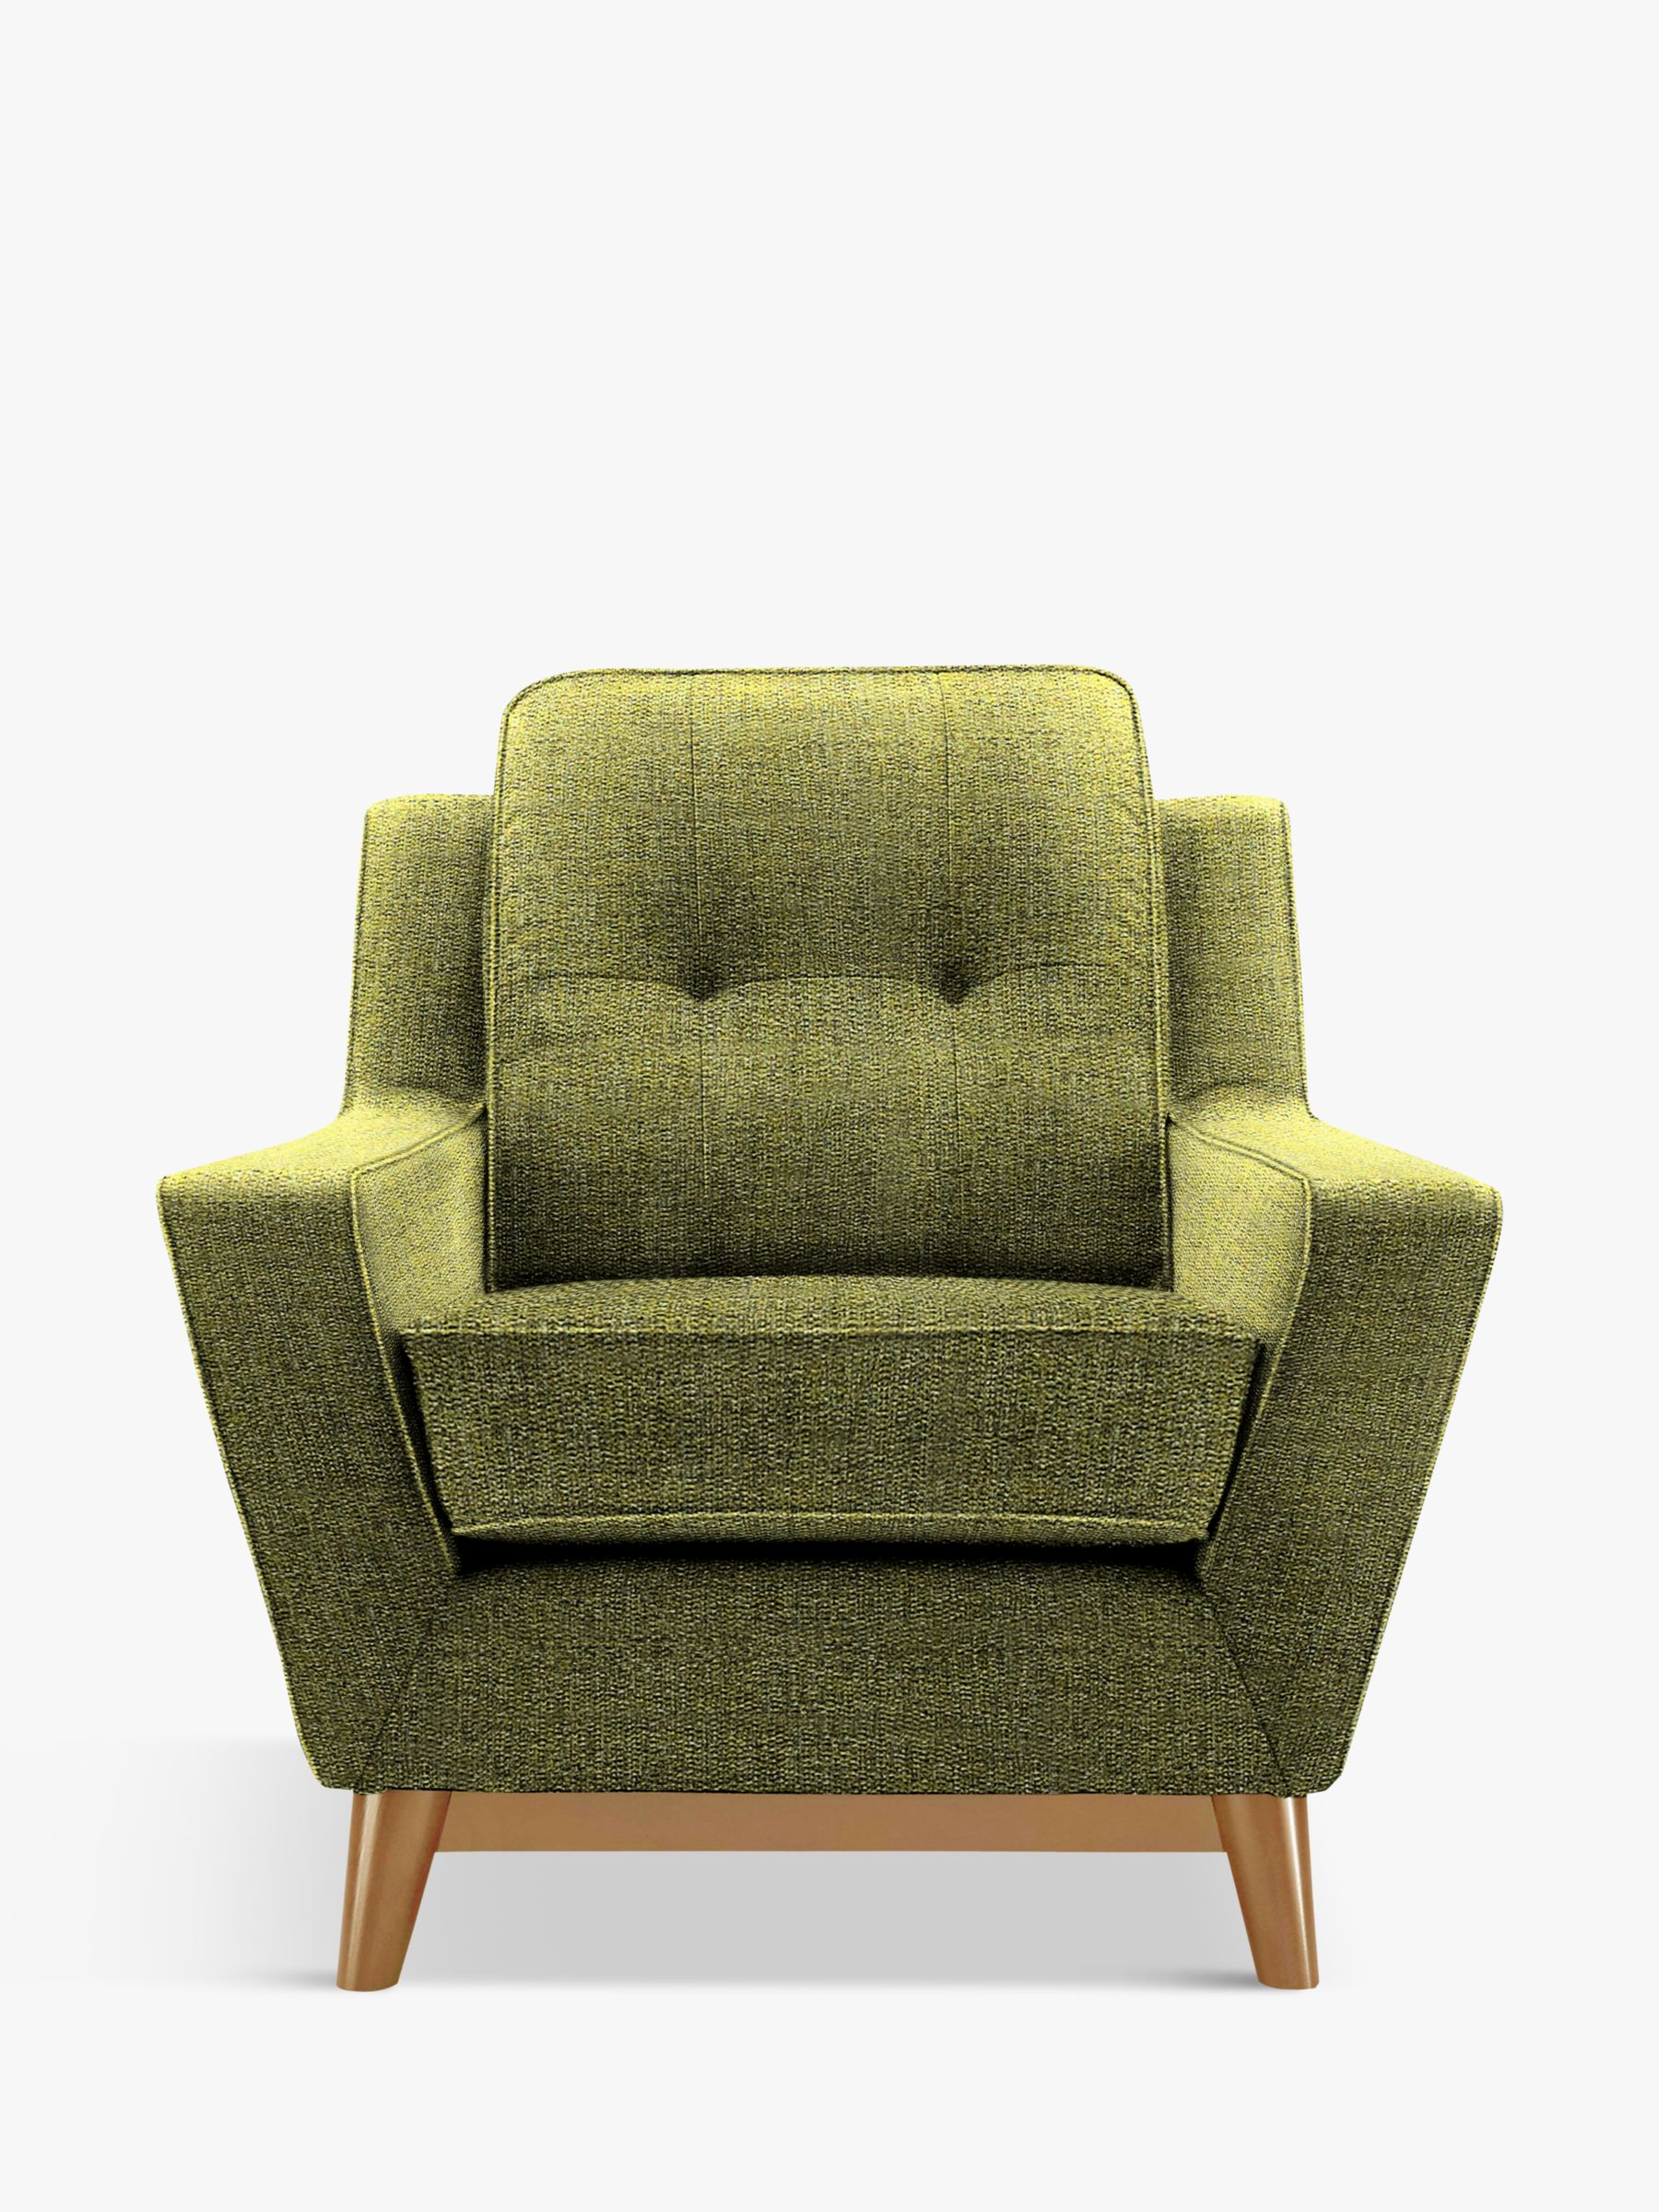 G Plan Vintage The Fifty Three Armchair, Marl Green